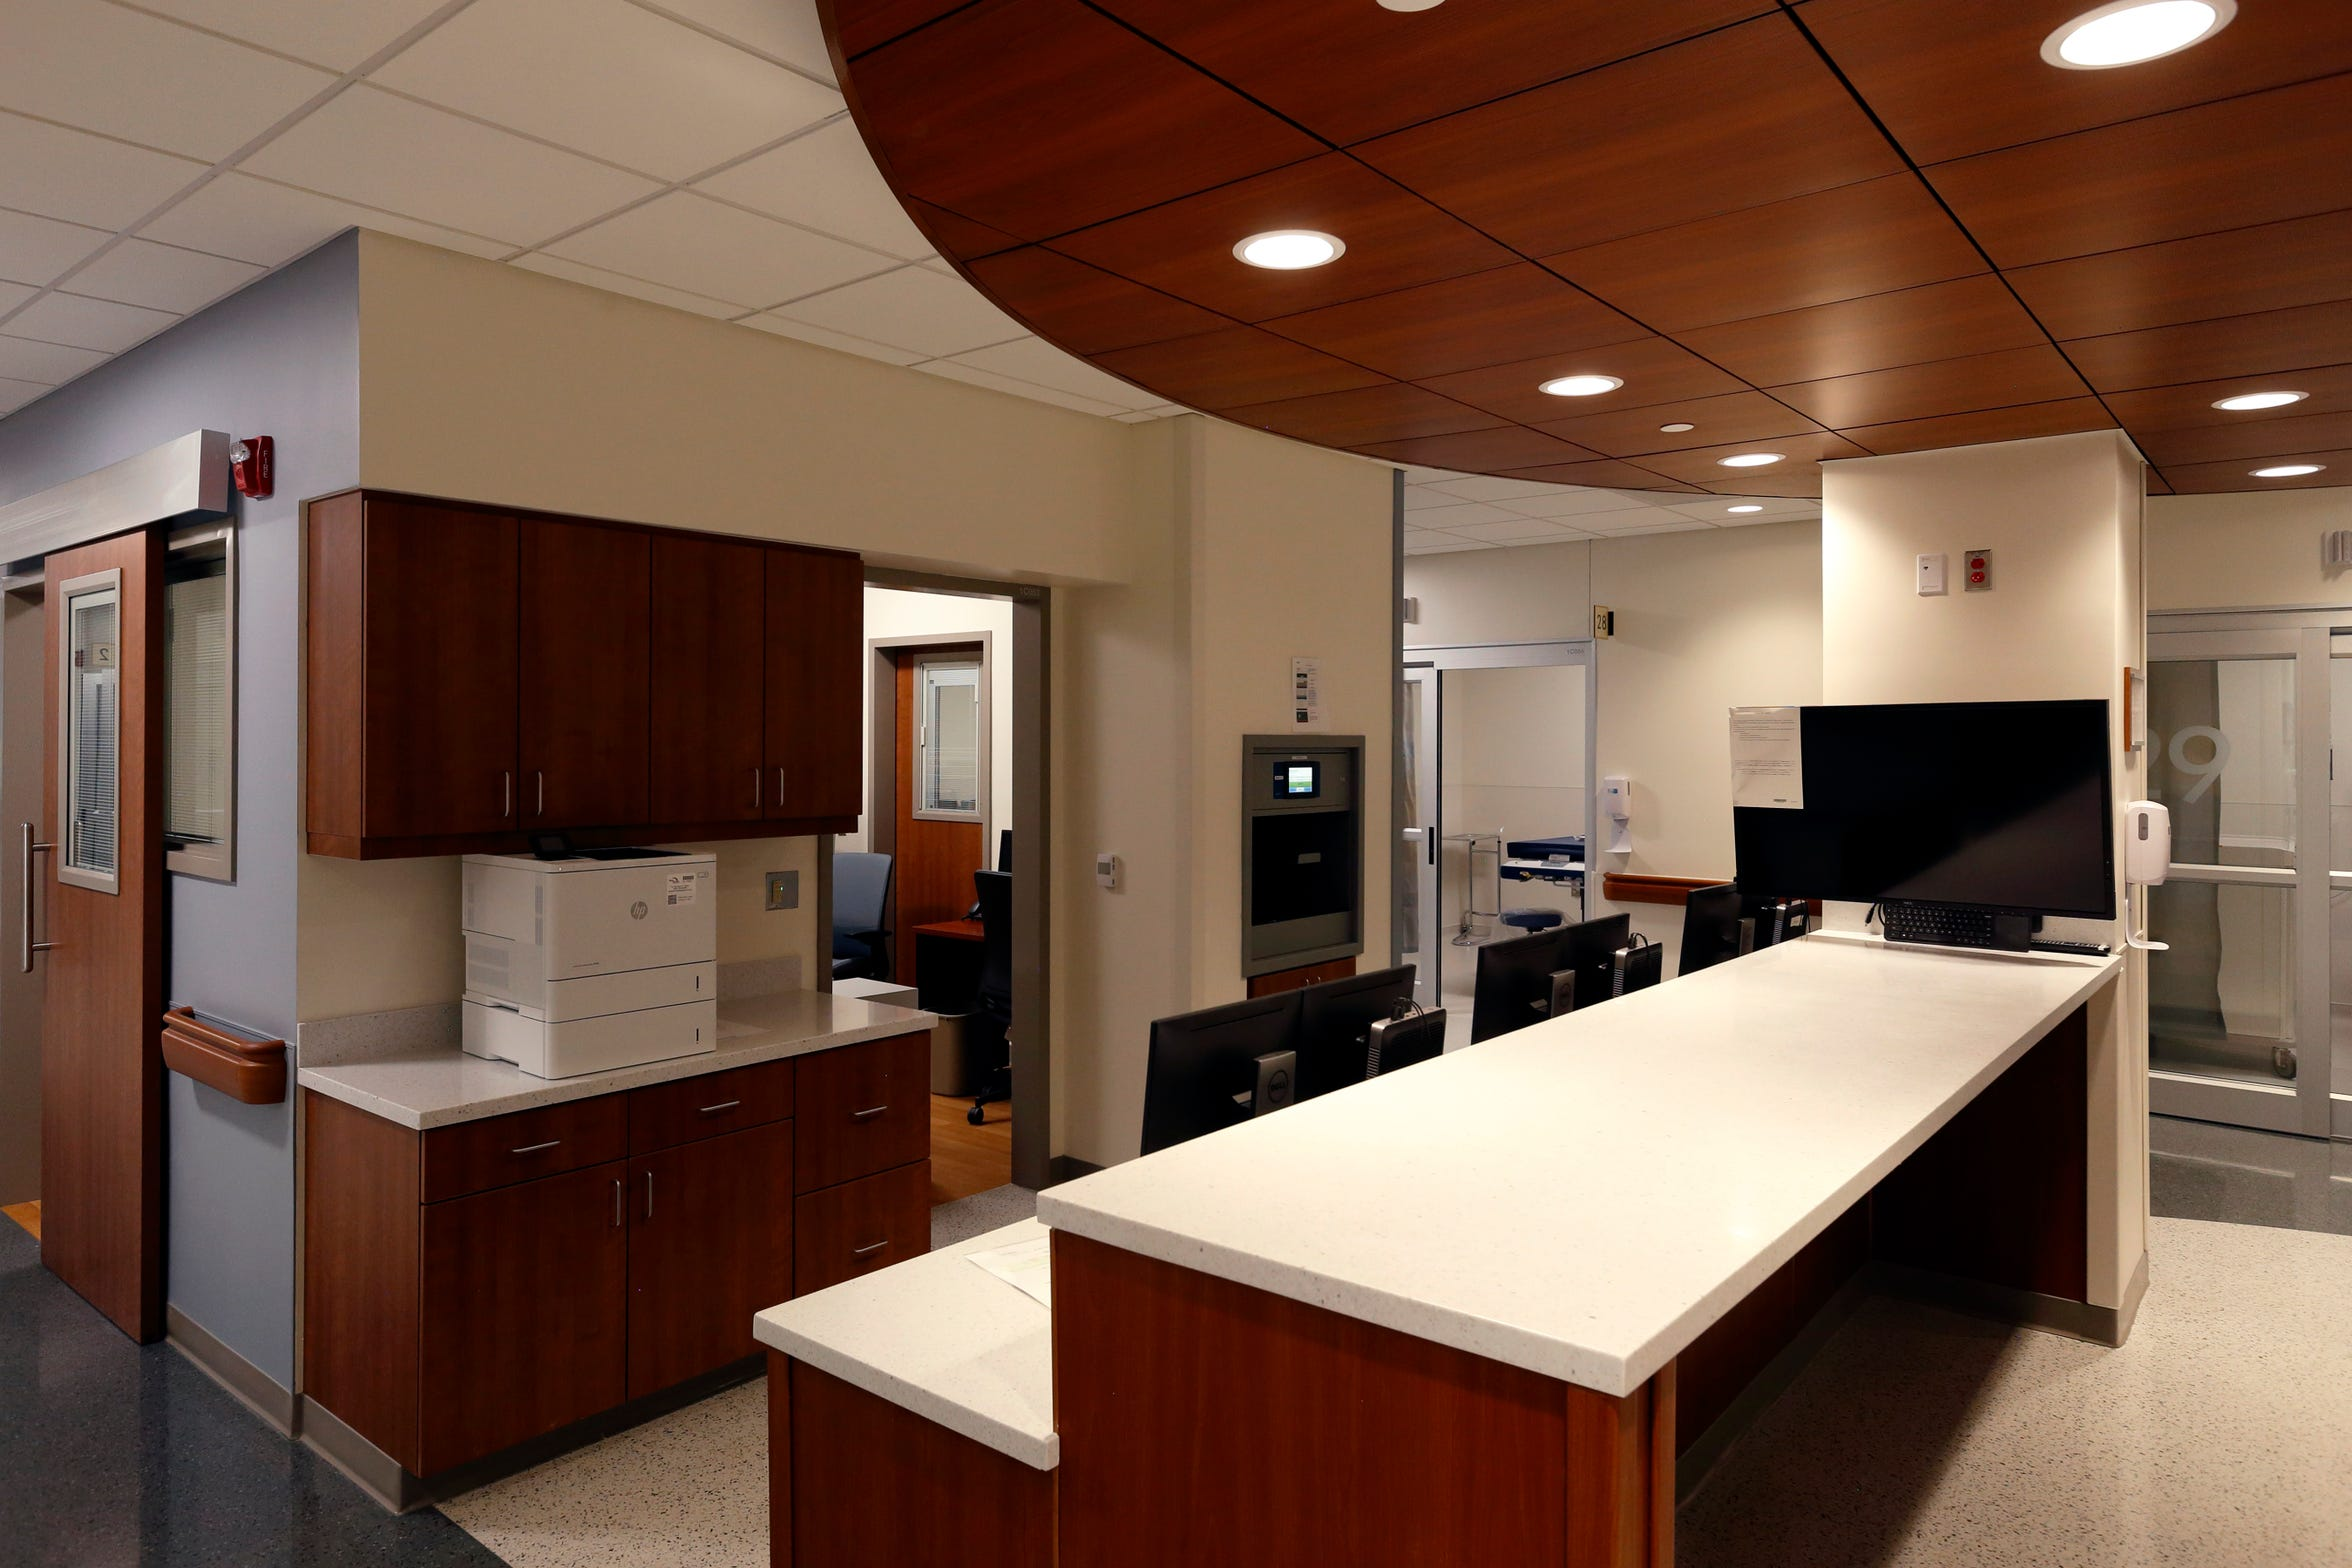 Nurses' station at Augusta Health's new Emergency Department in Fishersville, Virginia.